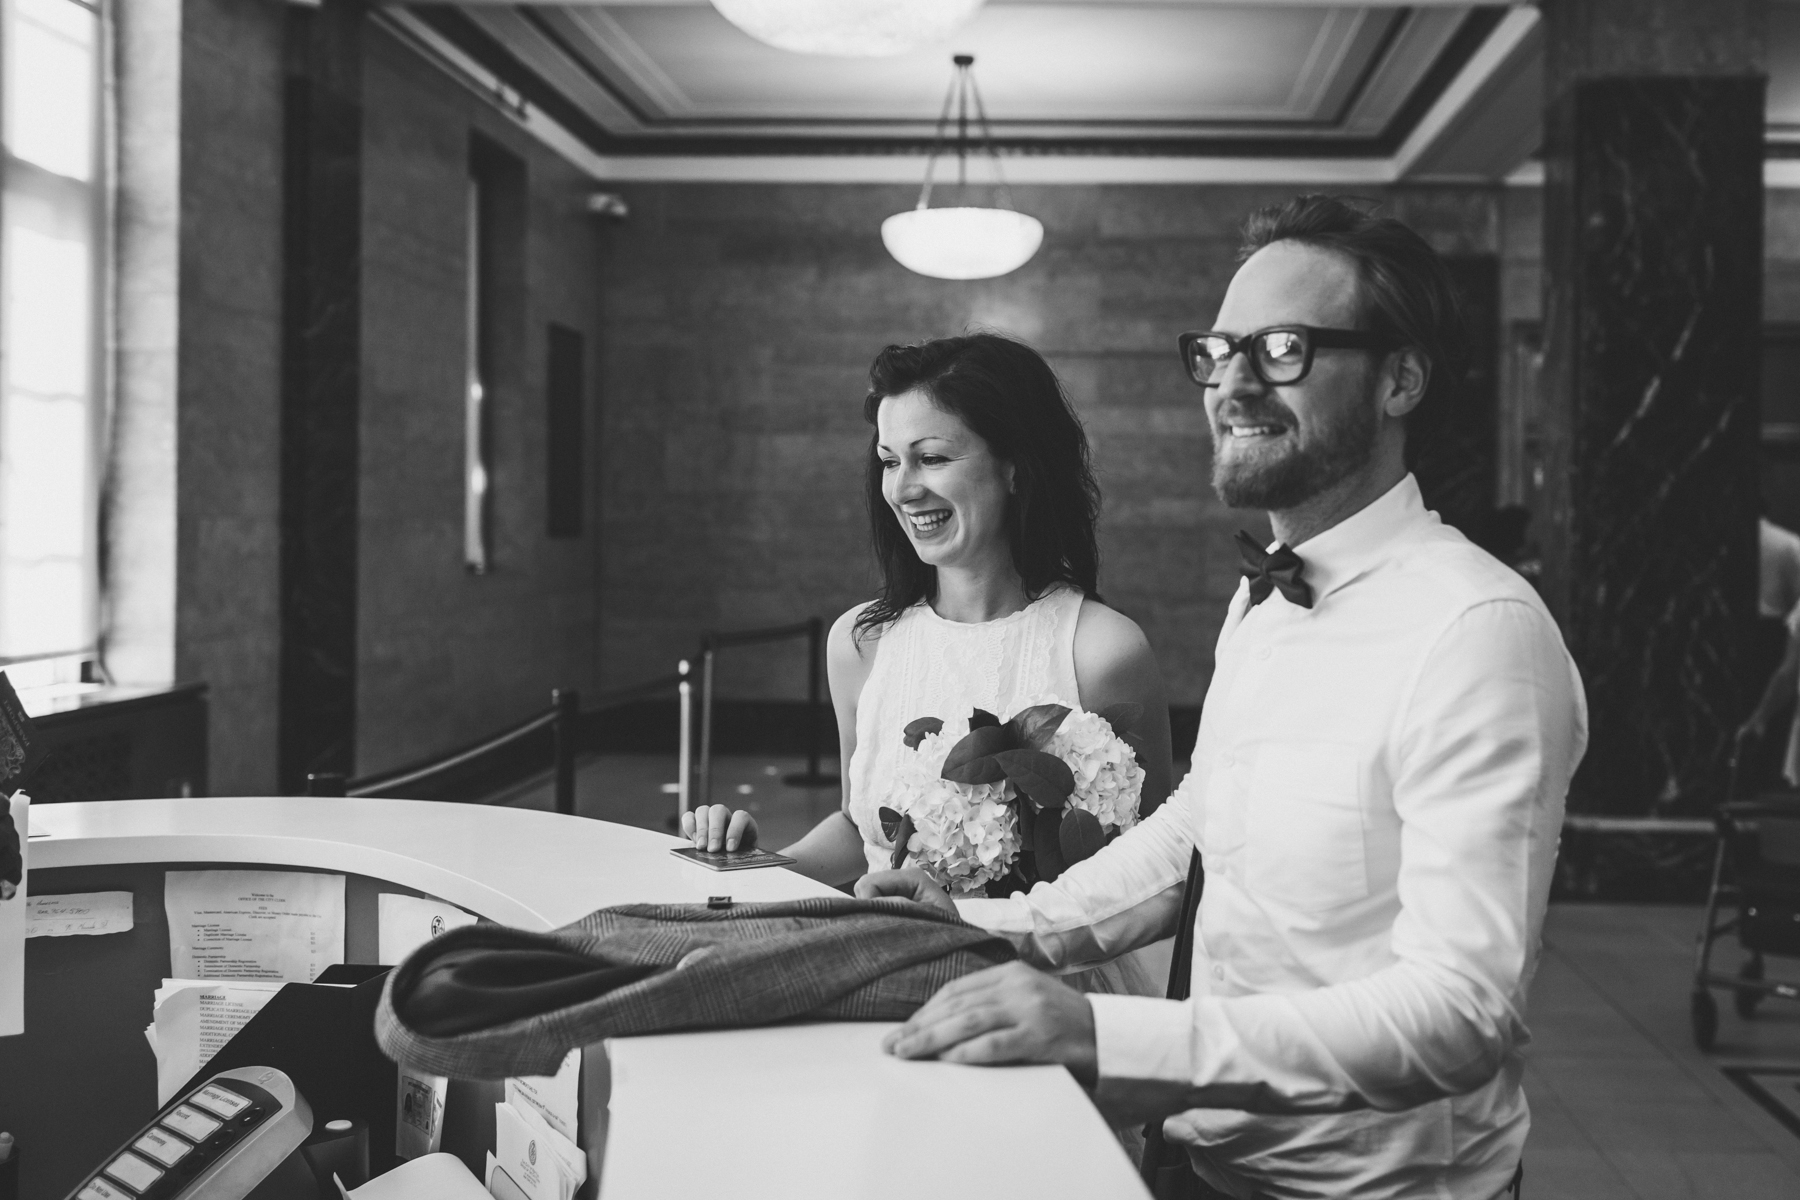 City-Hall-NYC-Elopement-New-York-Documentary-Wedding-Photographer-Elvira-Kalviste-1.jpg